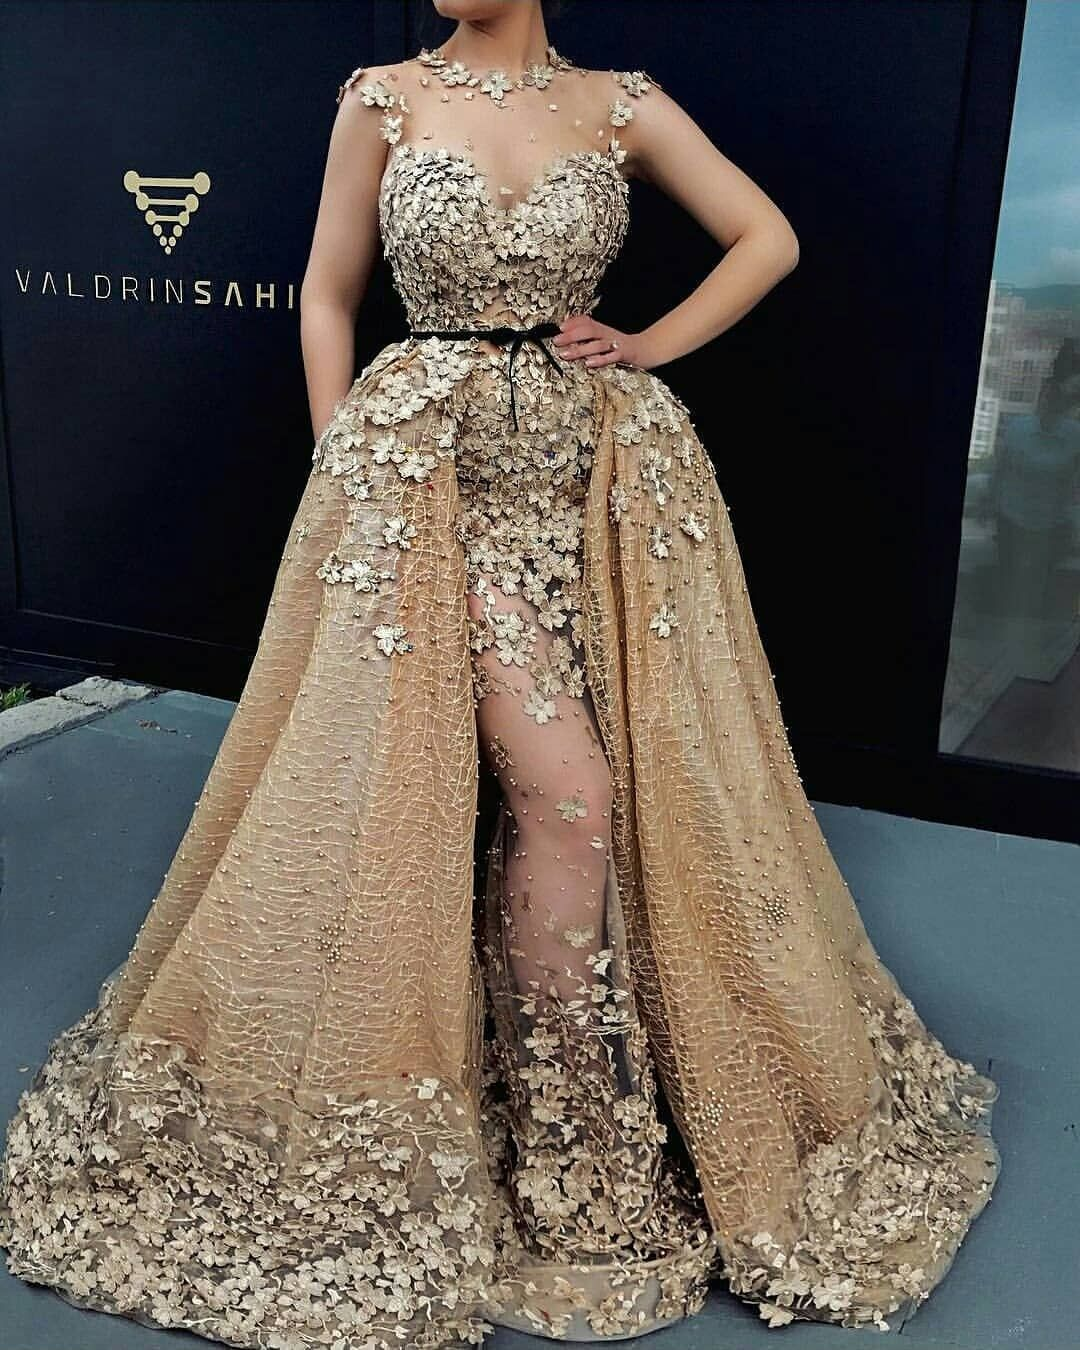 New The 10 Best Easy Hairstyles In The World Easy Hairstyle For Medium Hair For School Quick Lace Evening Dress Long Lace Prom Gown Lace Evening Dresses